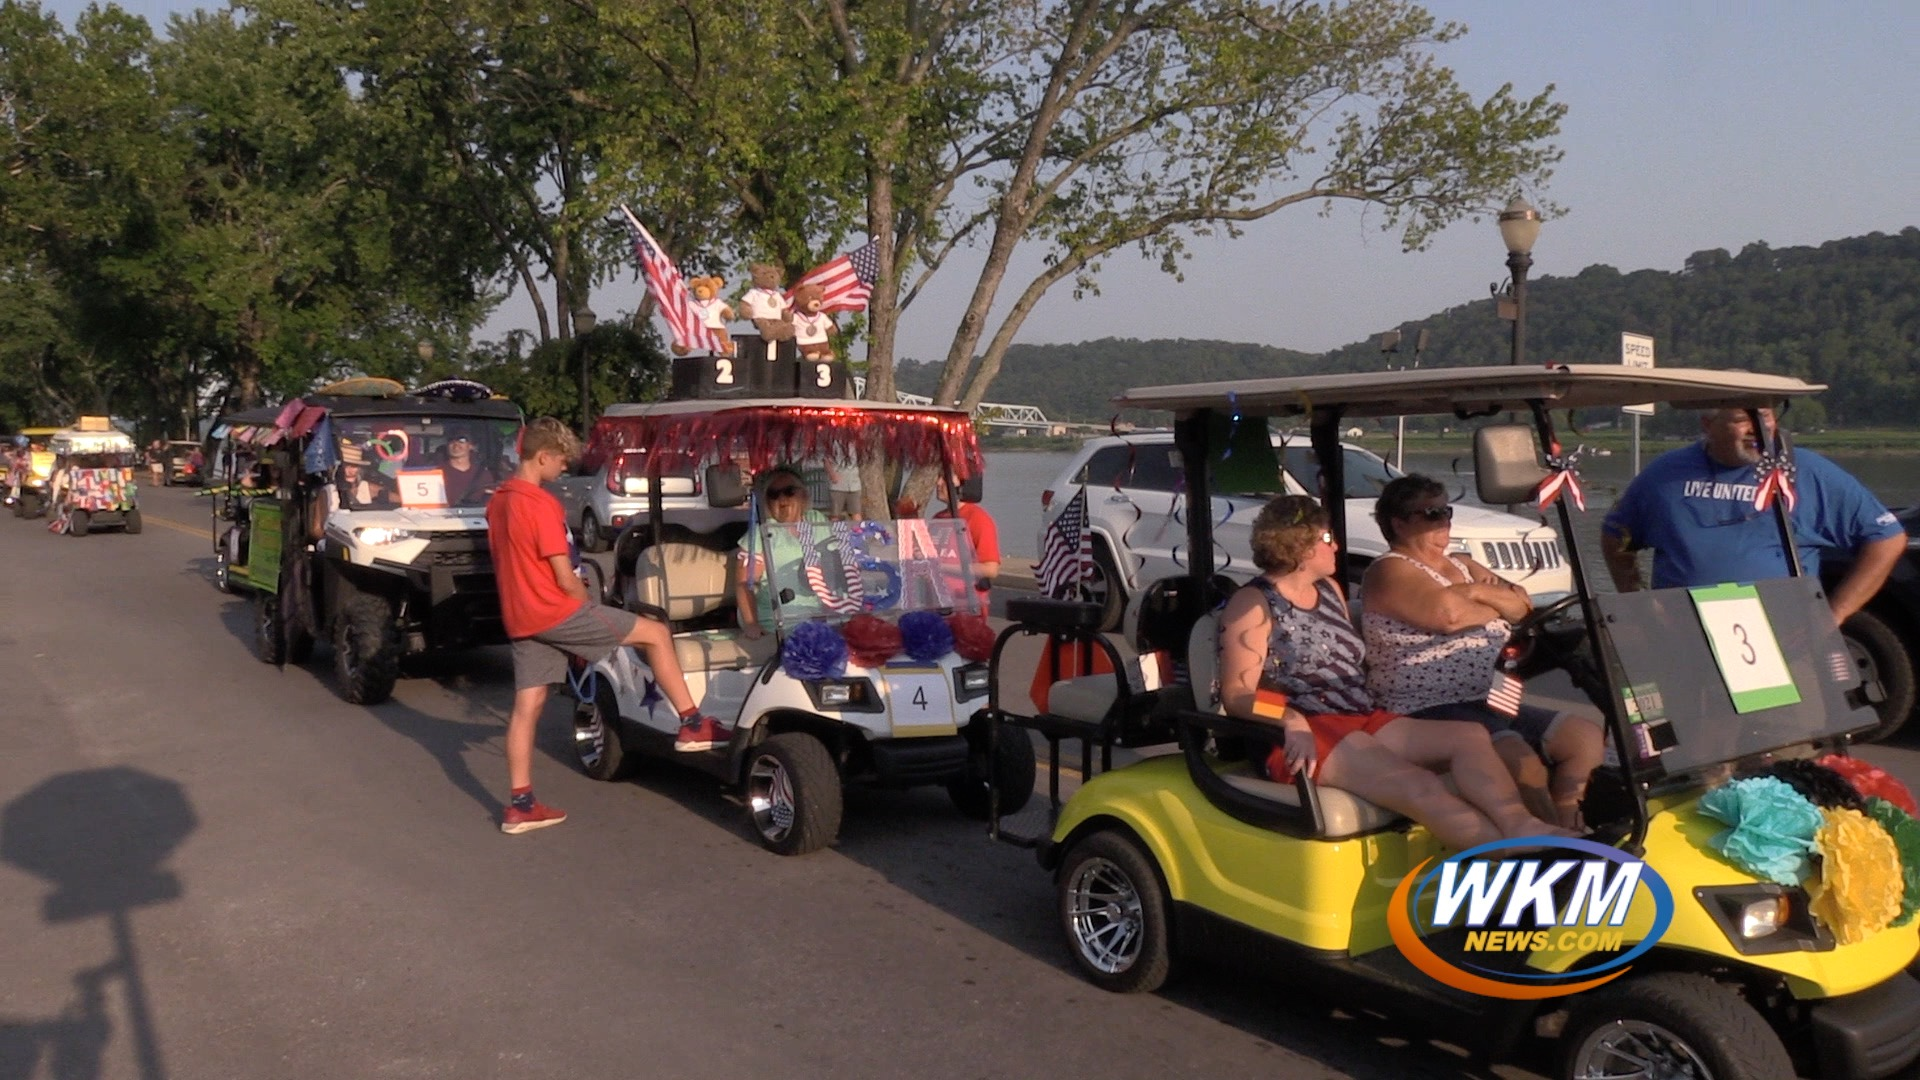 United Way's Golf Cart Olympic Games